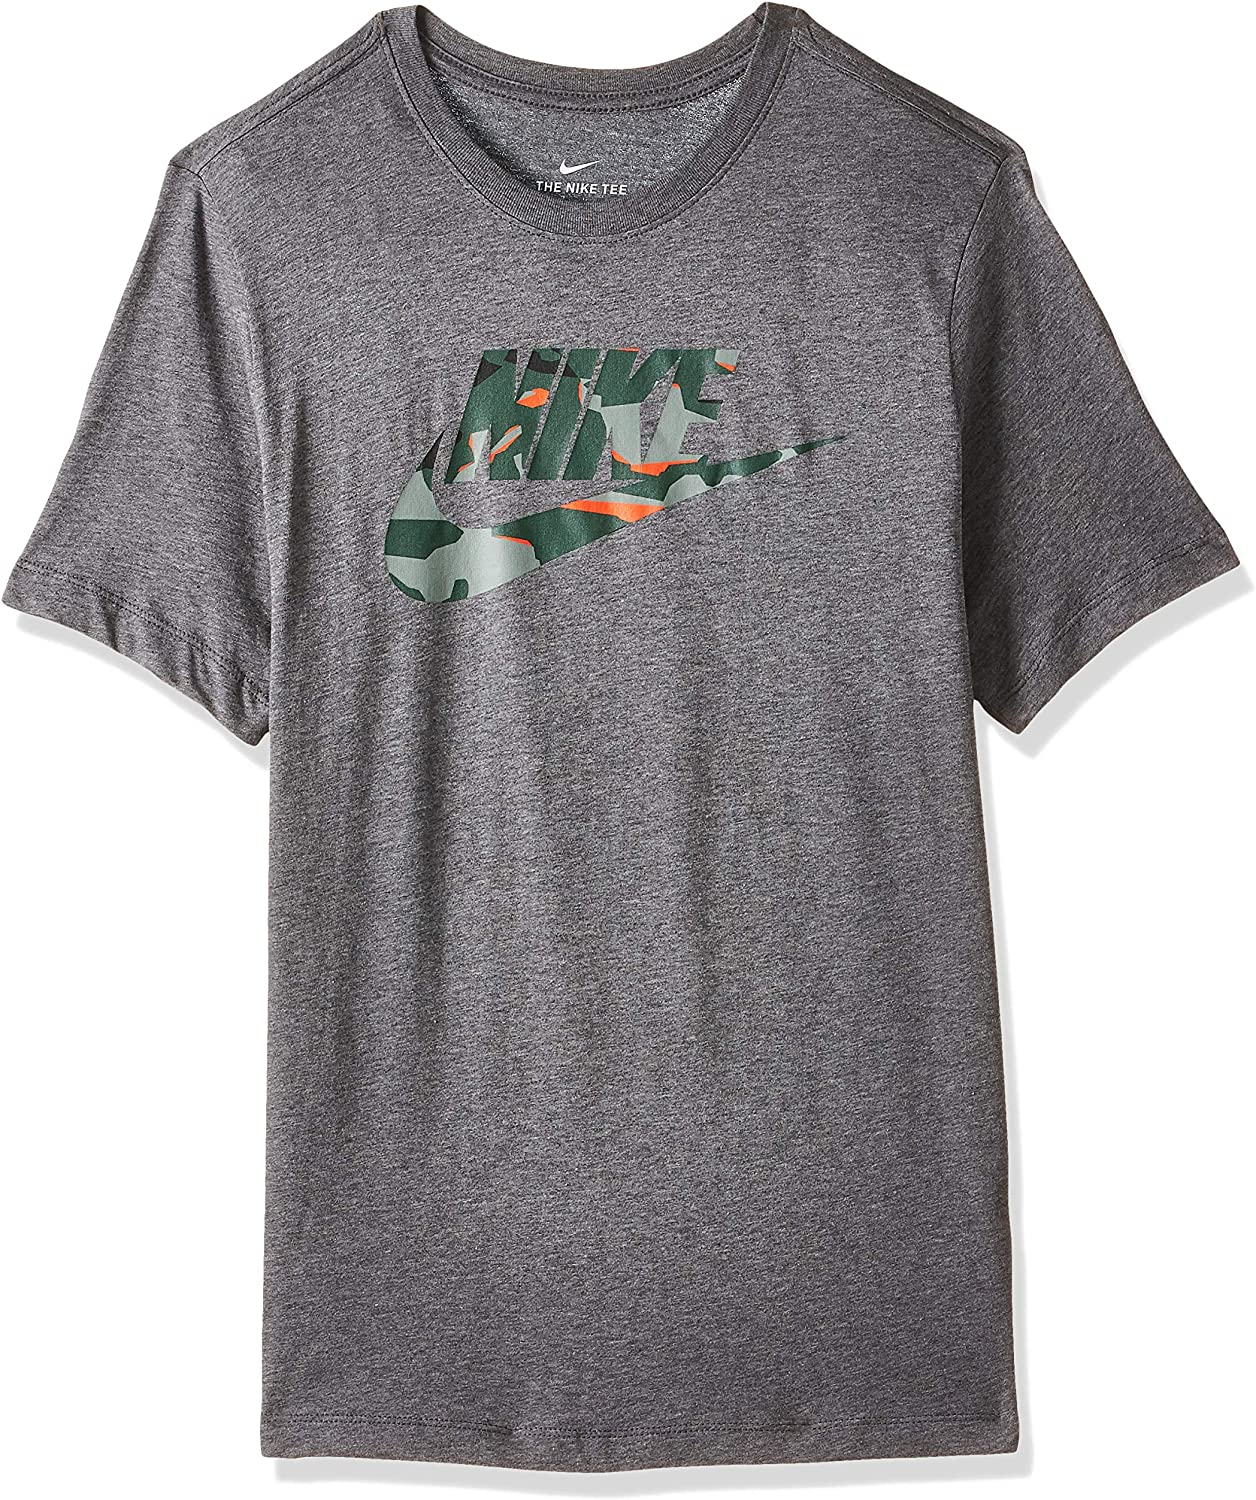 Indianapolis Mall Nike Sportswear Men's T-Shirt Logo sold out